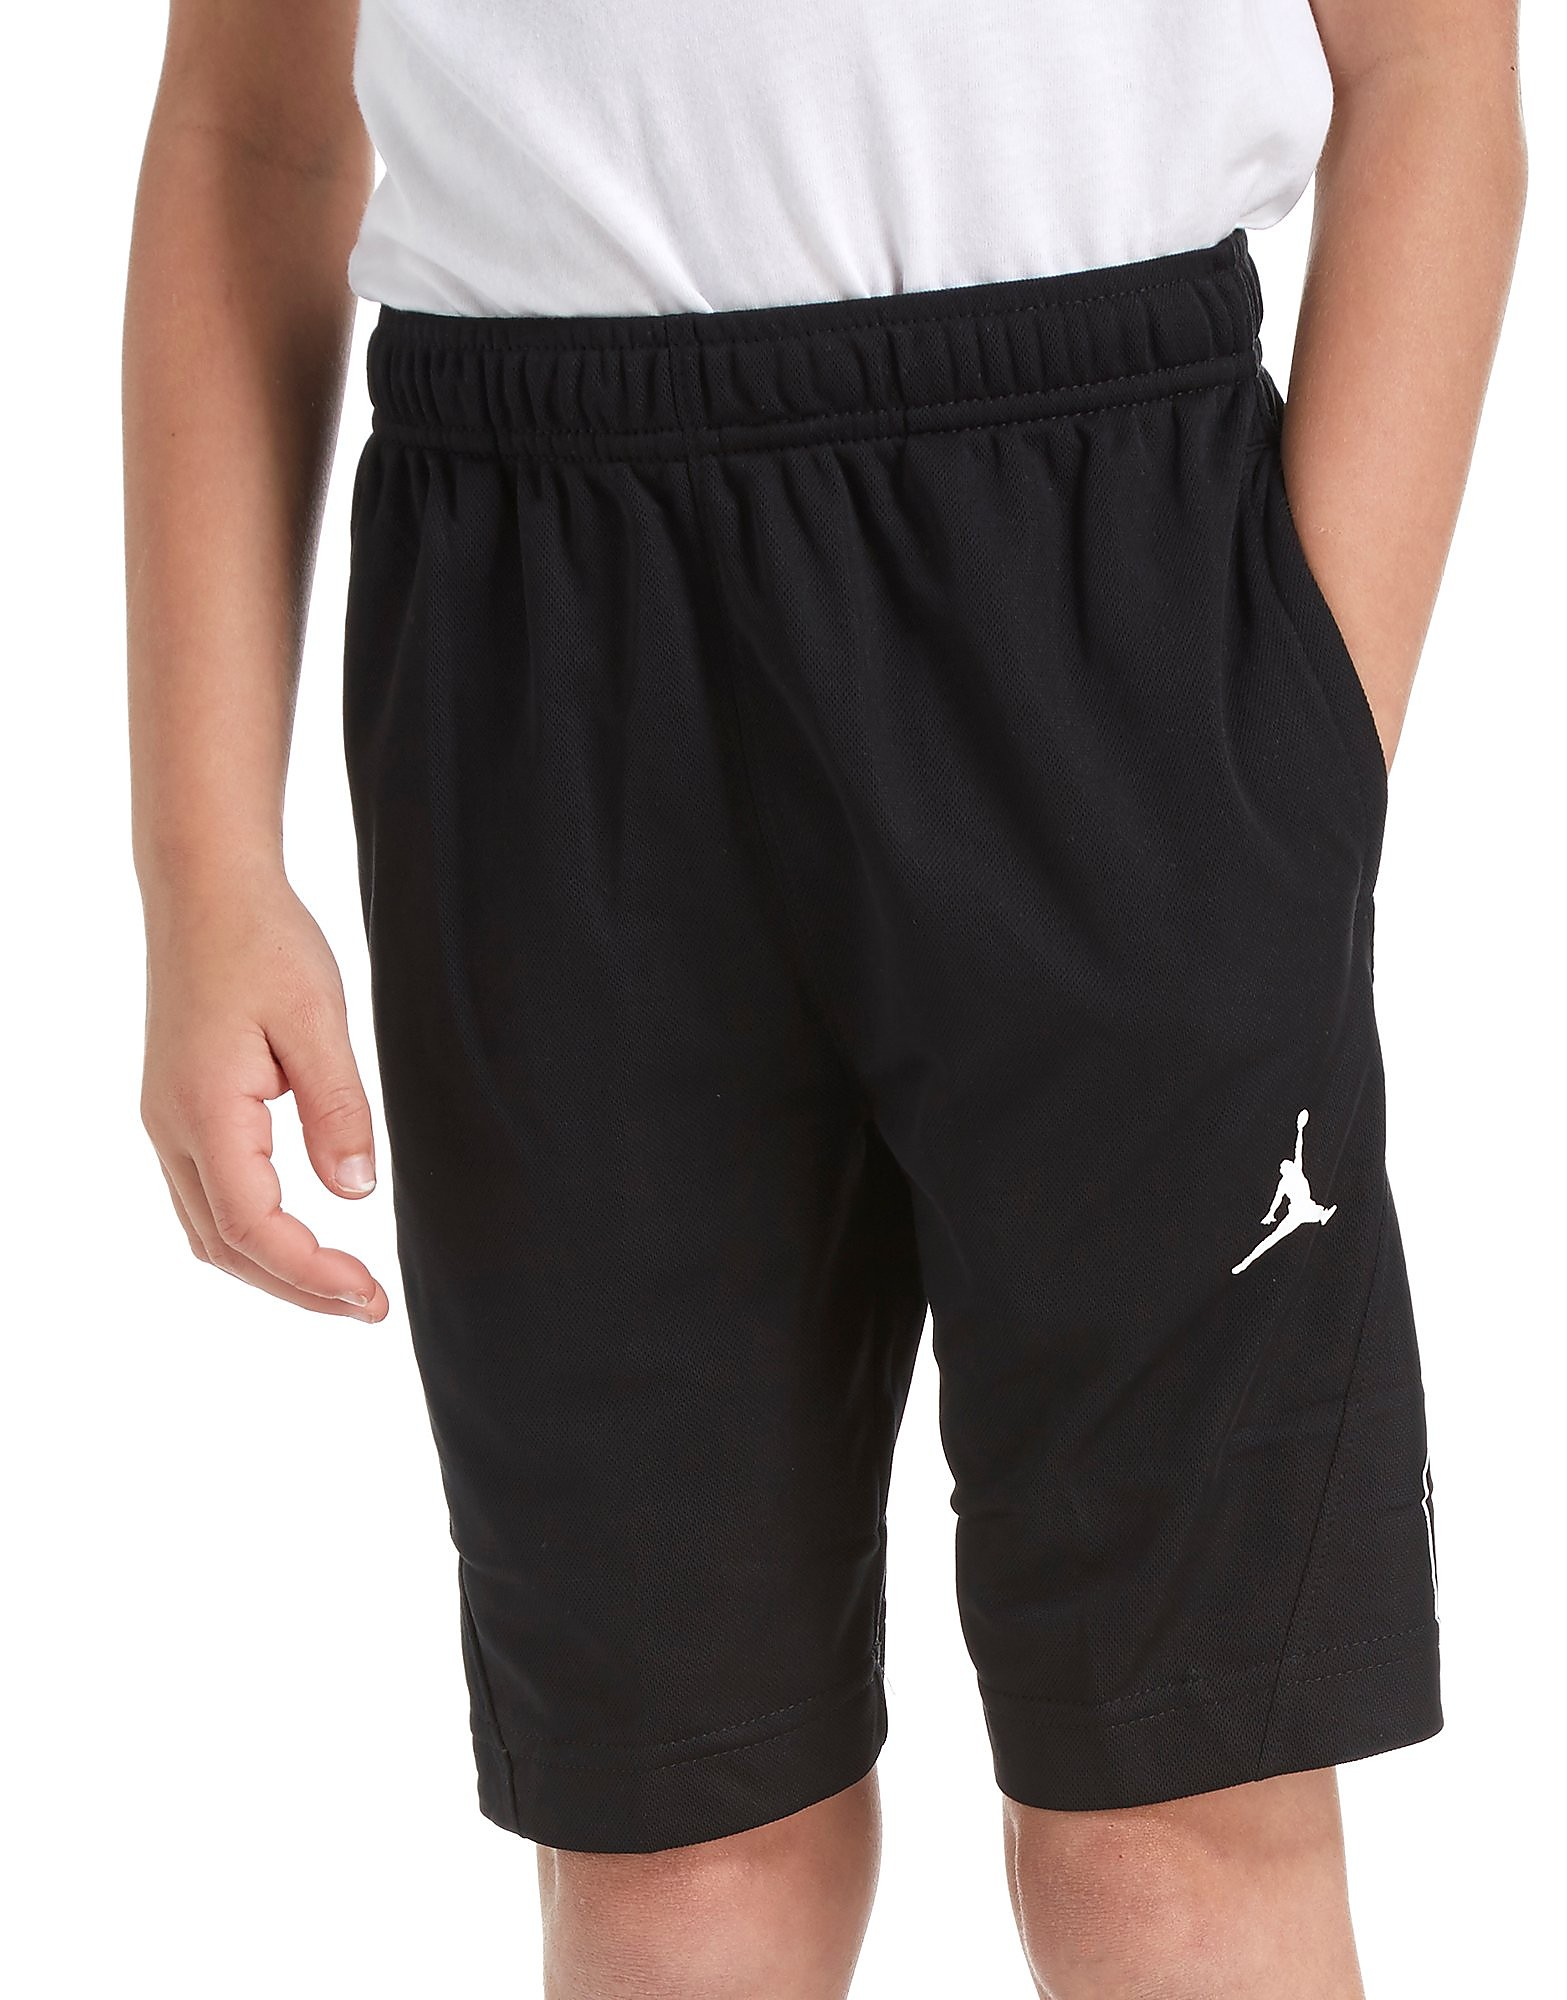 Jordan 23 Shorts Children